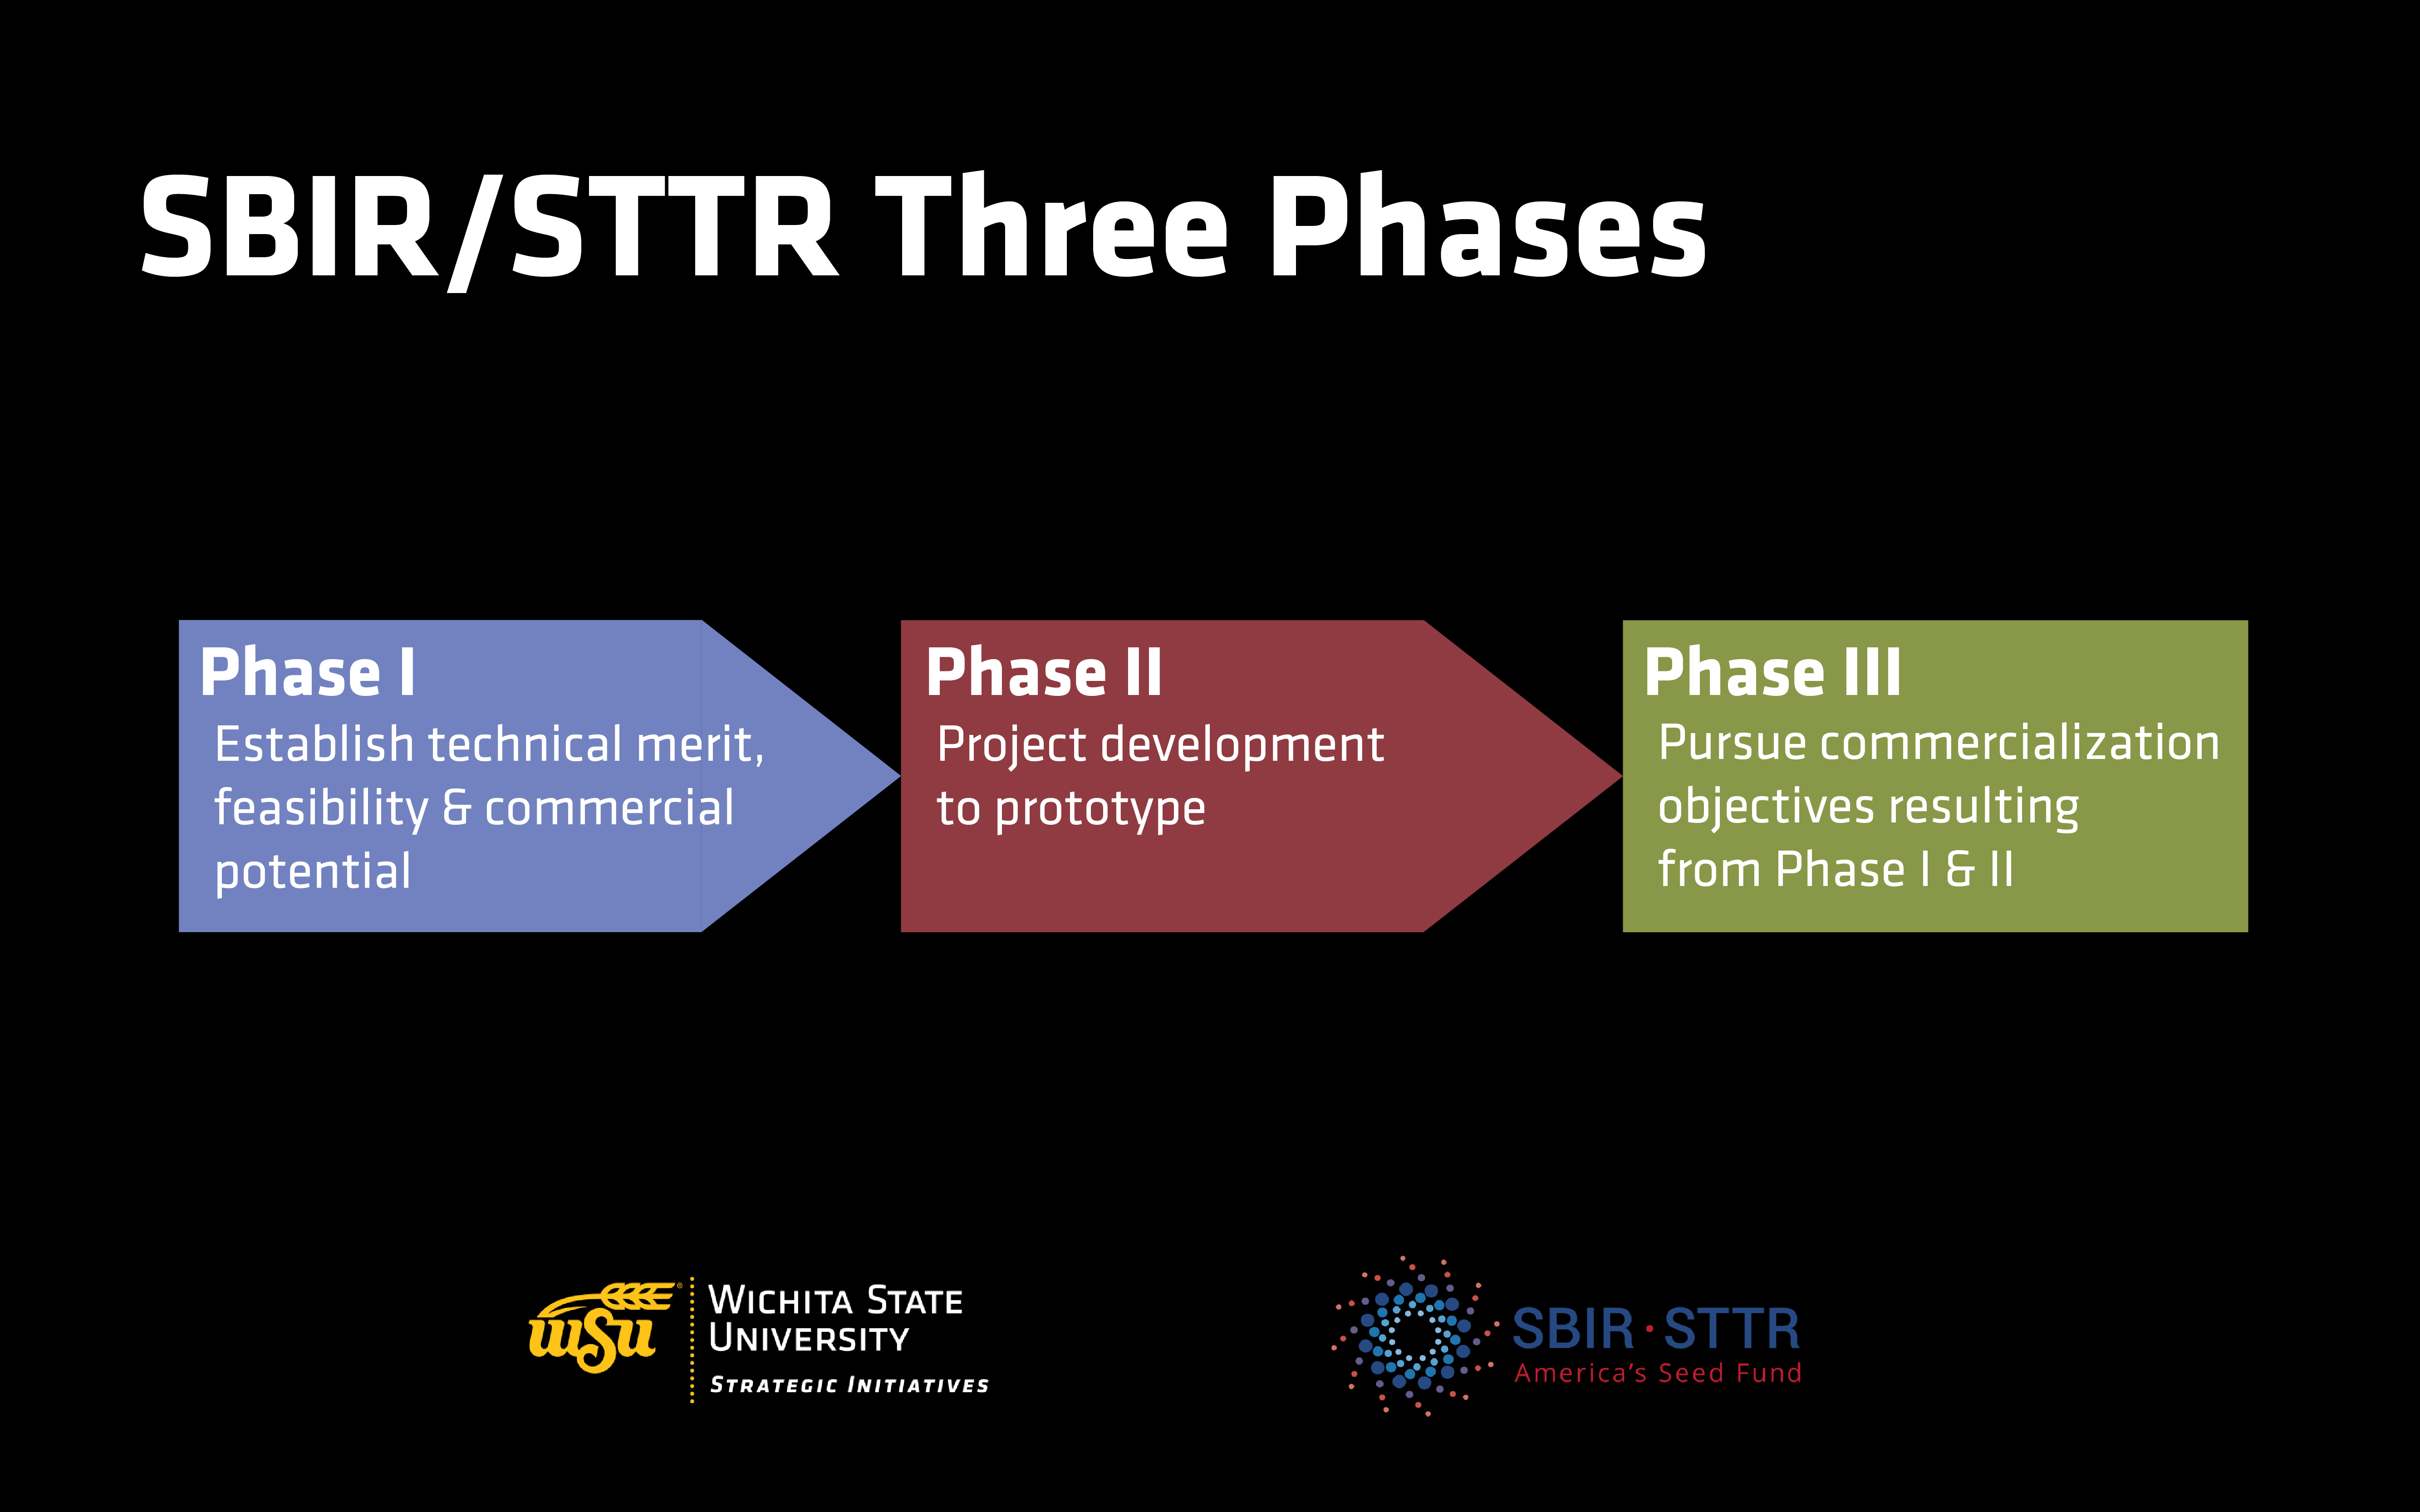 SBIR Three Phases